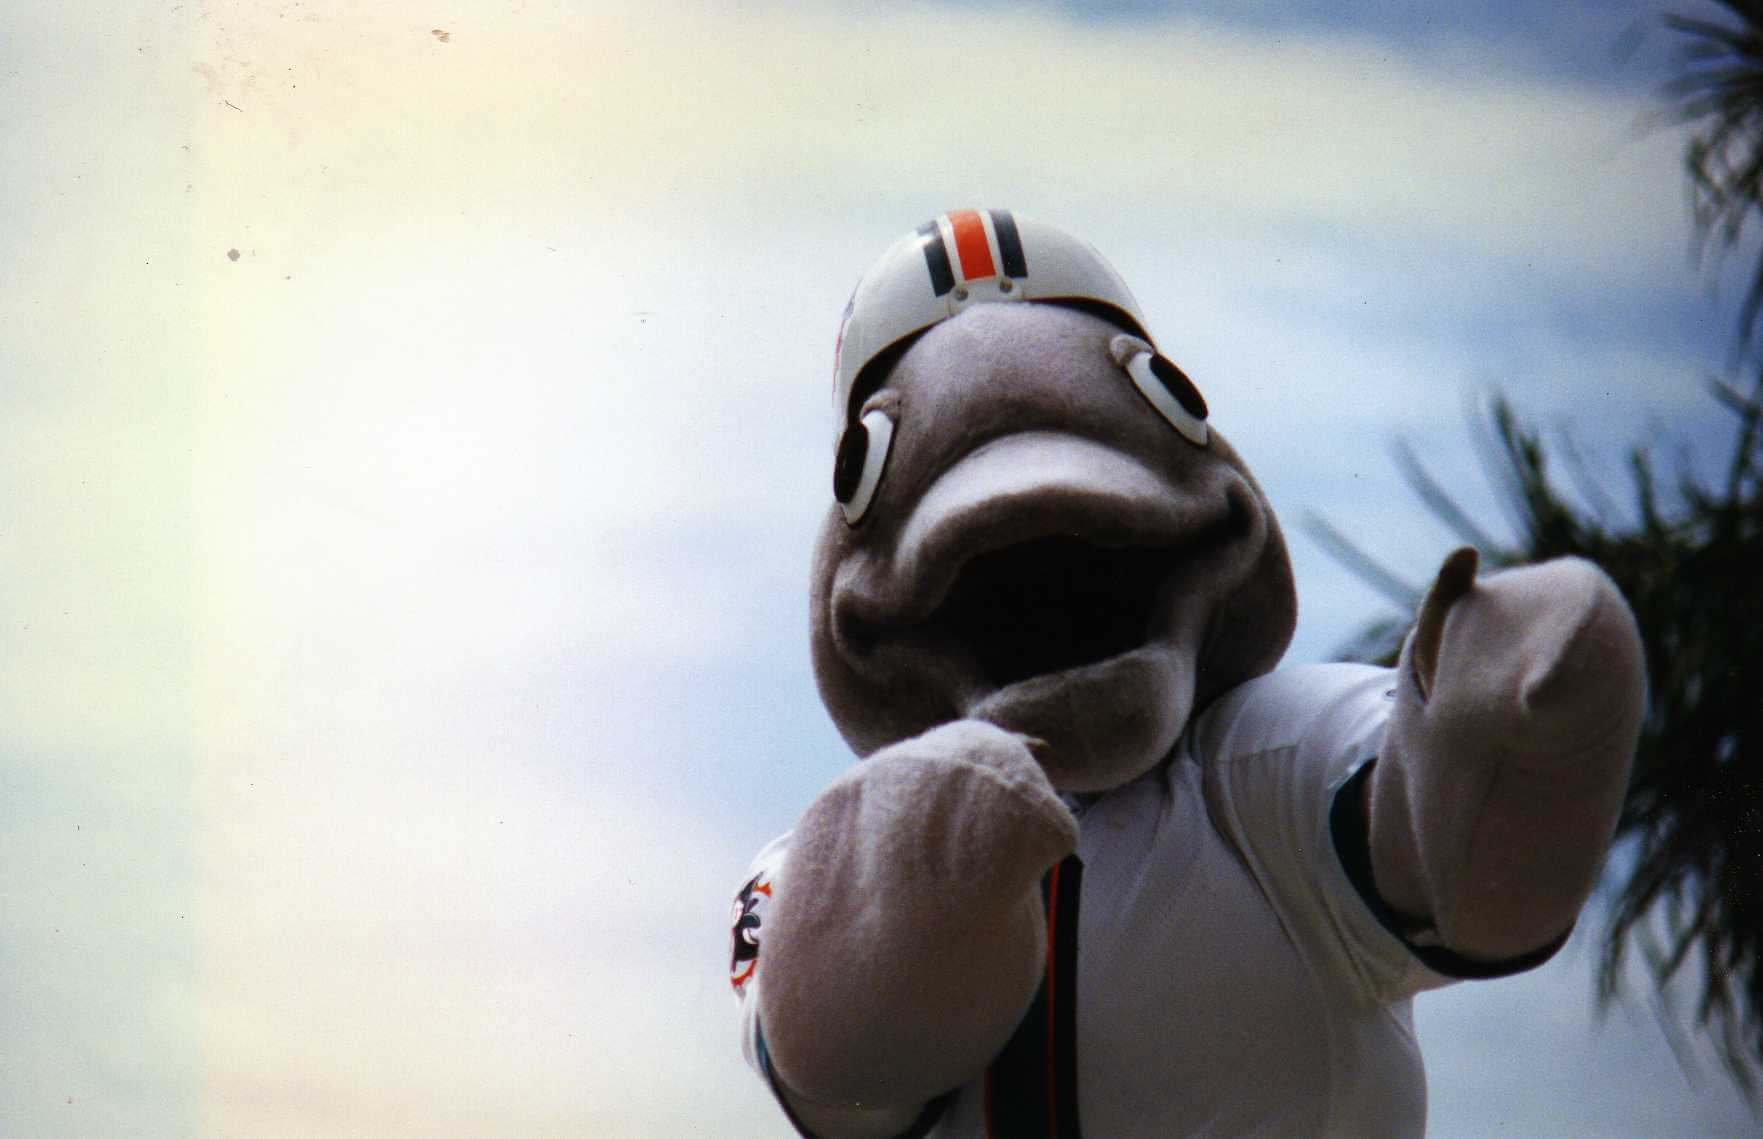 TD mascot of the Miami Dolphins